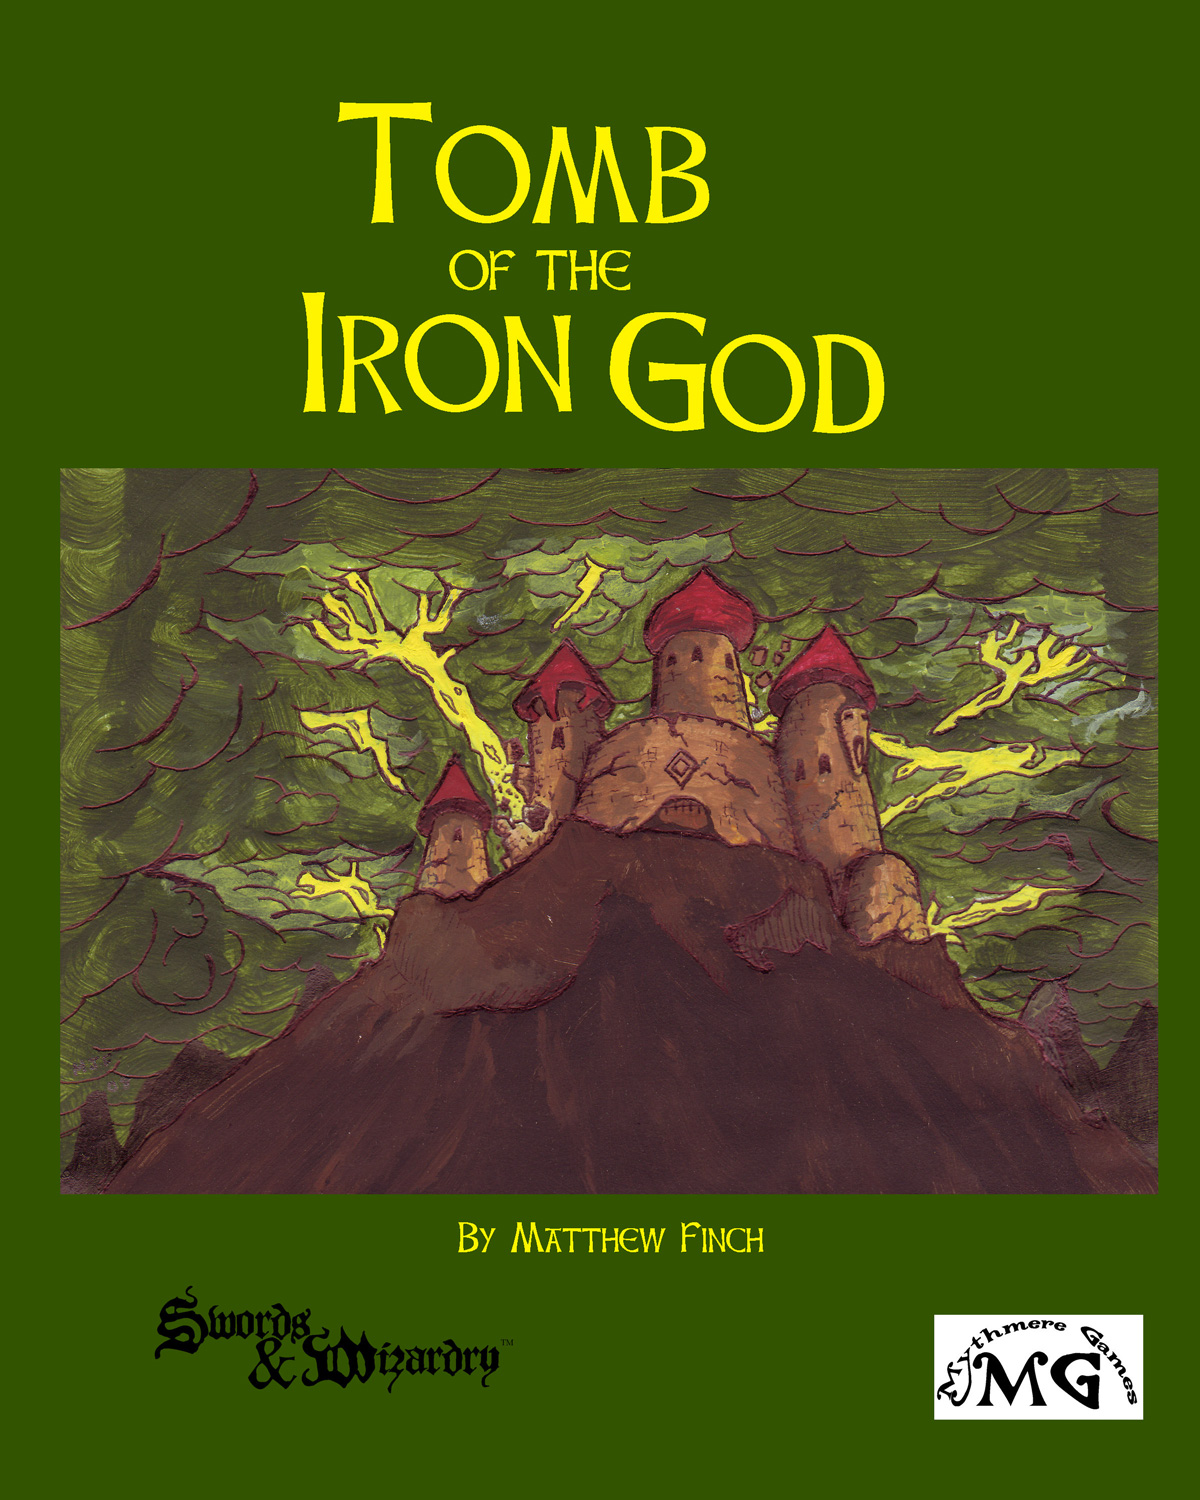 Lightning destroys the Tomb of the Iron God on a perilous cliff